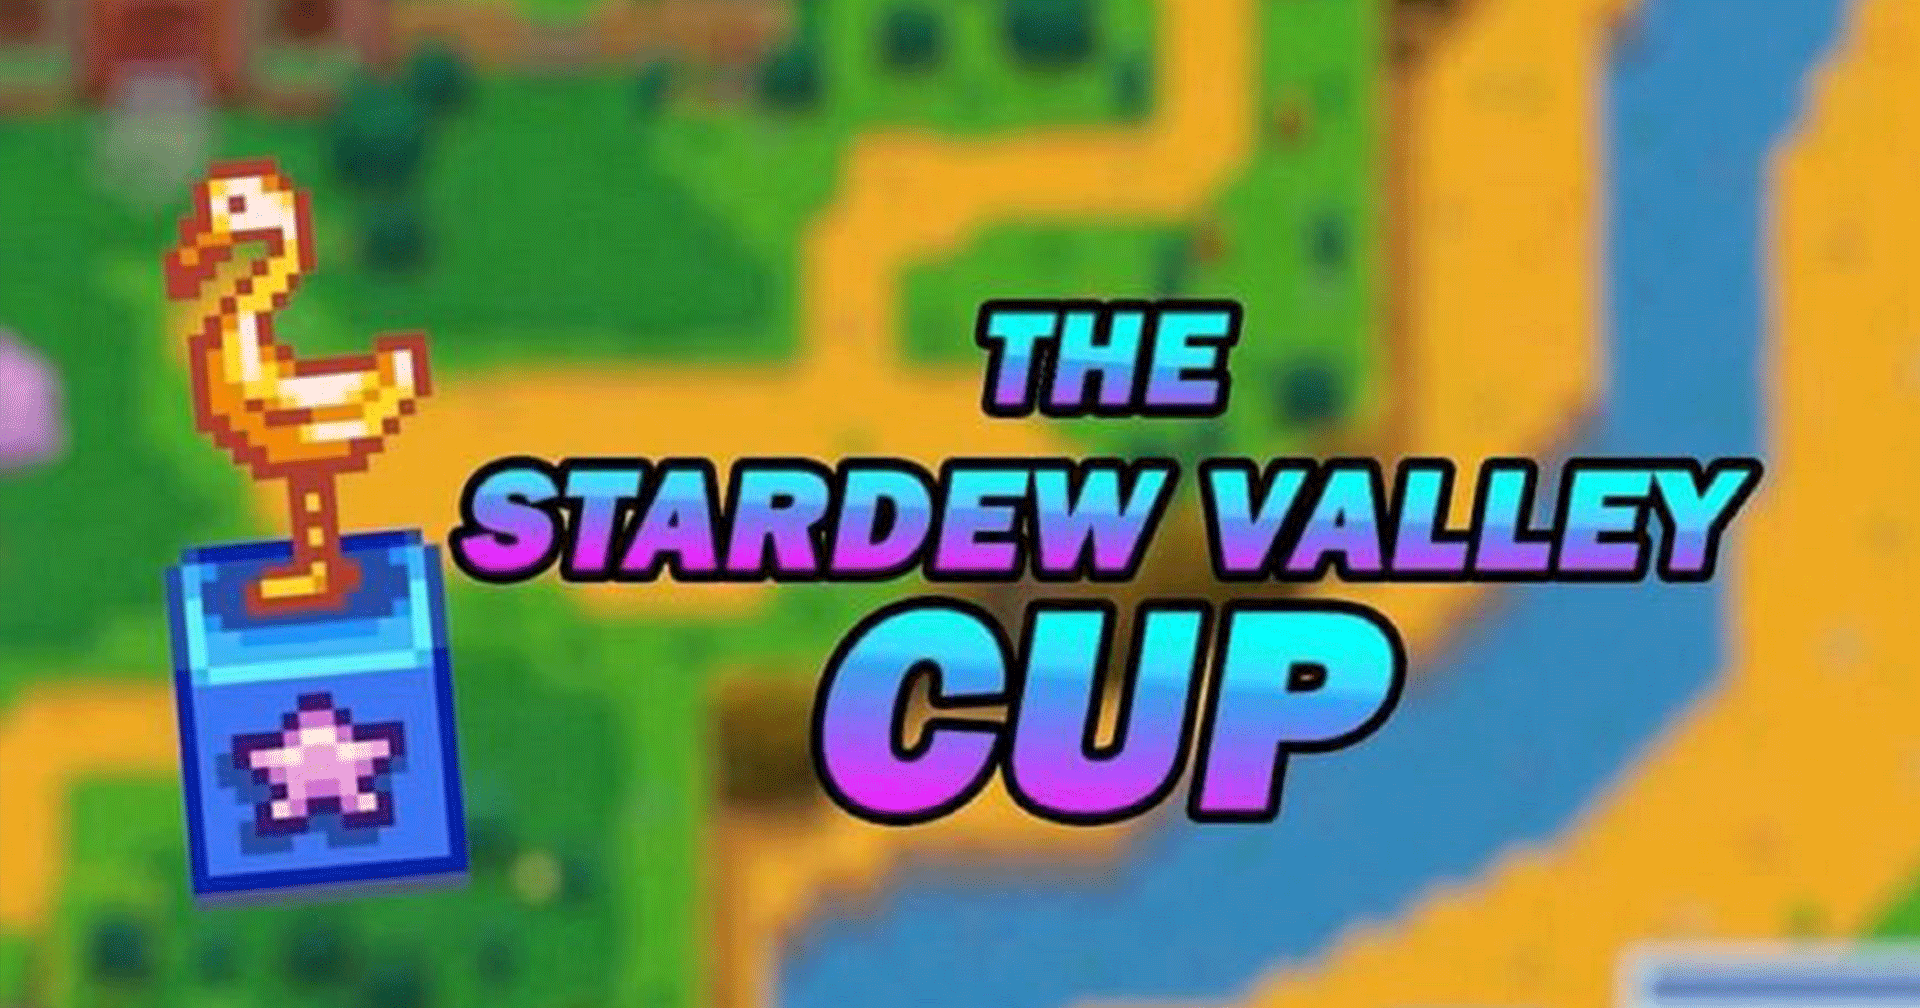 Stardew Valley Cup